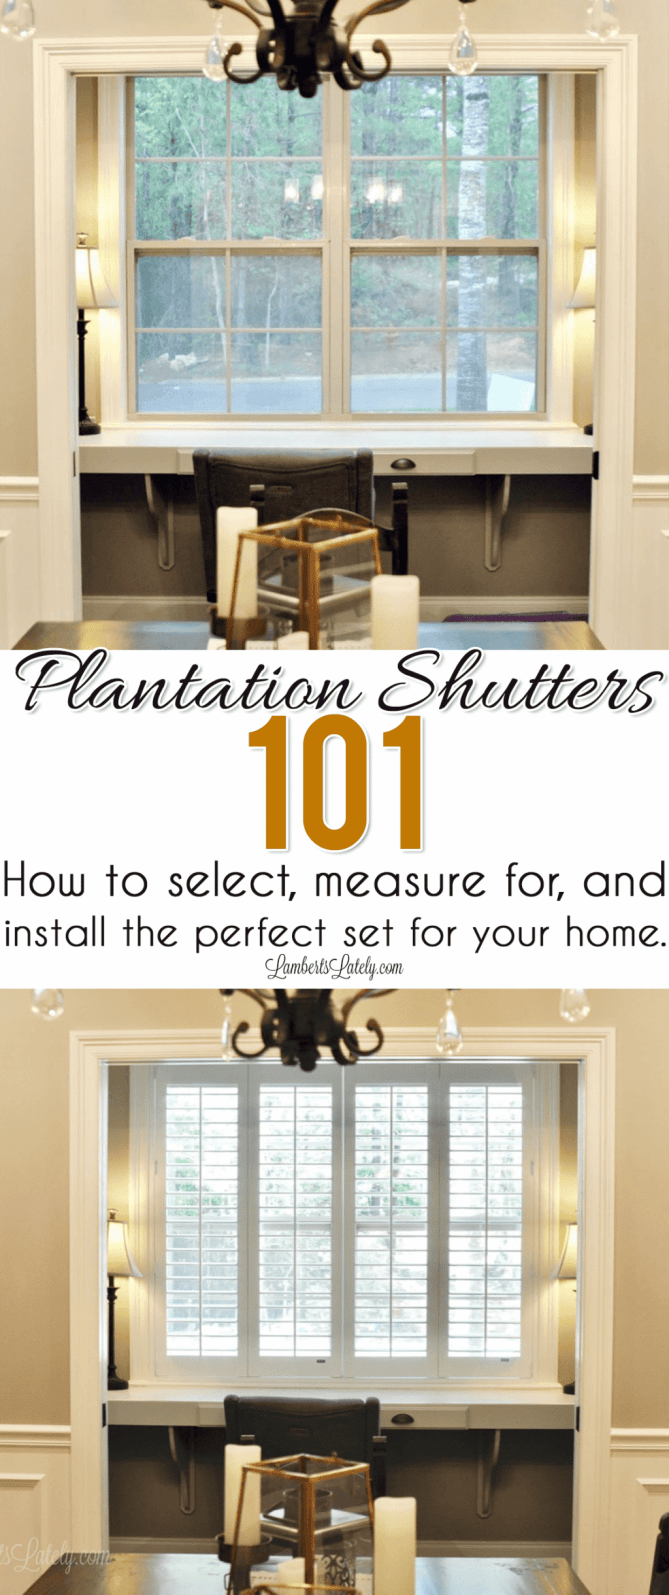 Ready to buy plantation shutters for your windows, but don't know where to start? This series walks you through the entire DIY process of selecting, measuring for, purchasing, and installing faux wood plantation blinds yourself, from before to after!